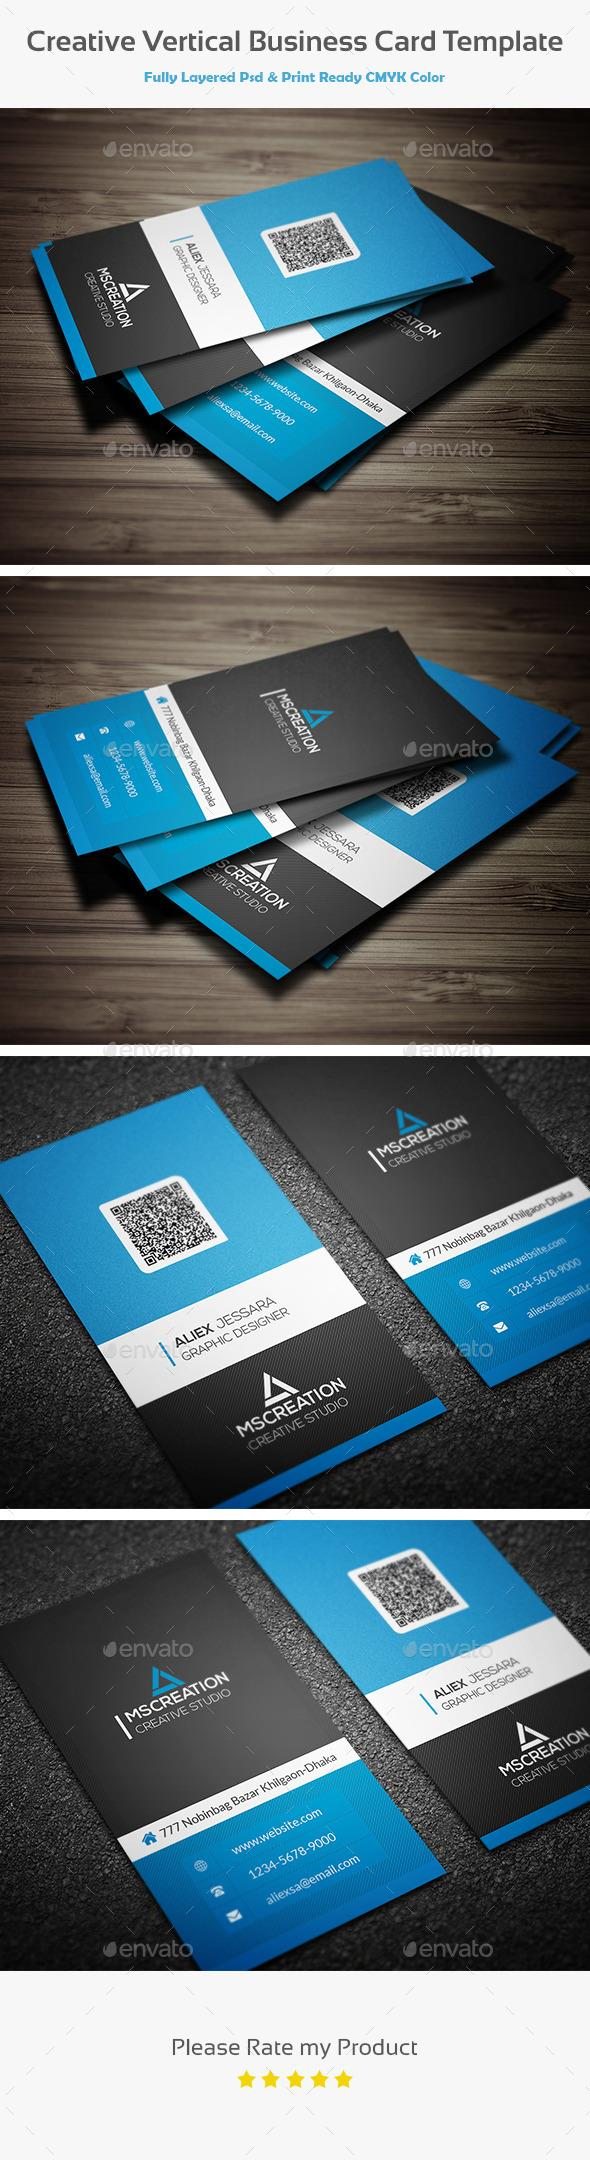 Creative Vertical Business Card Template Pinterest Vertical - Horizontal business card template